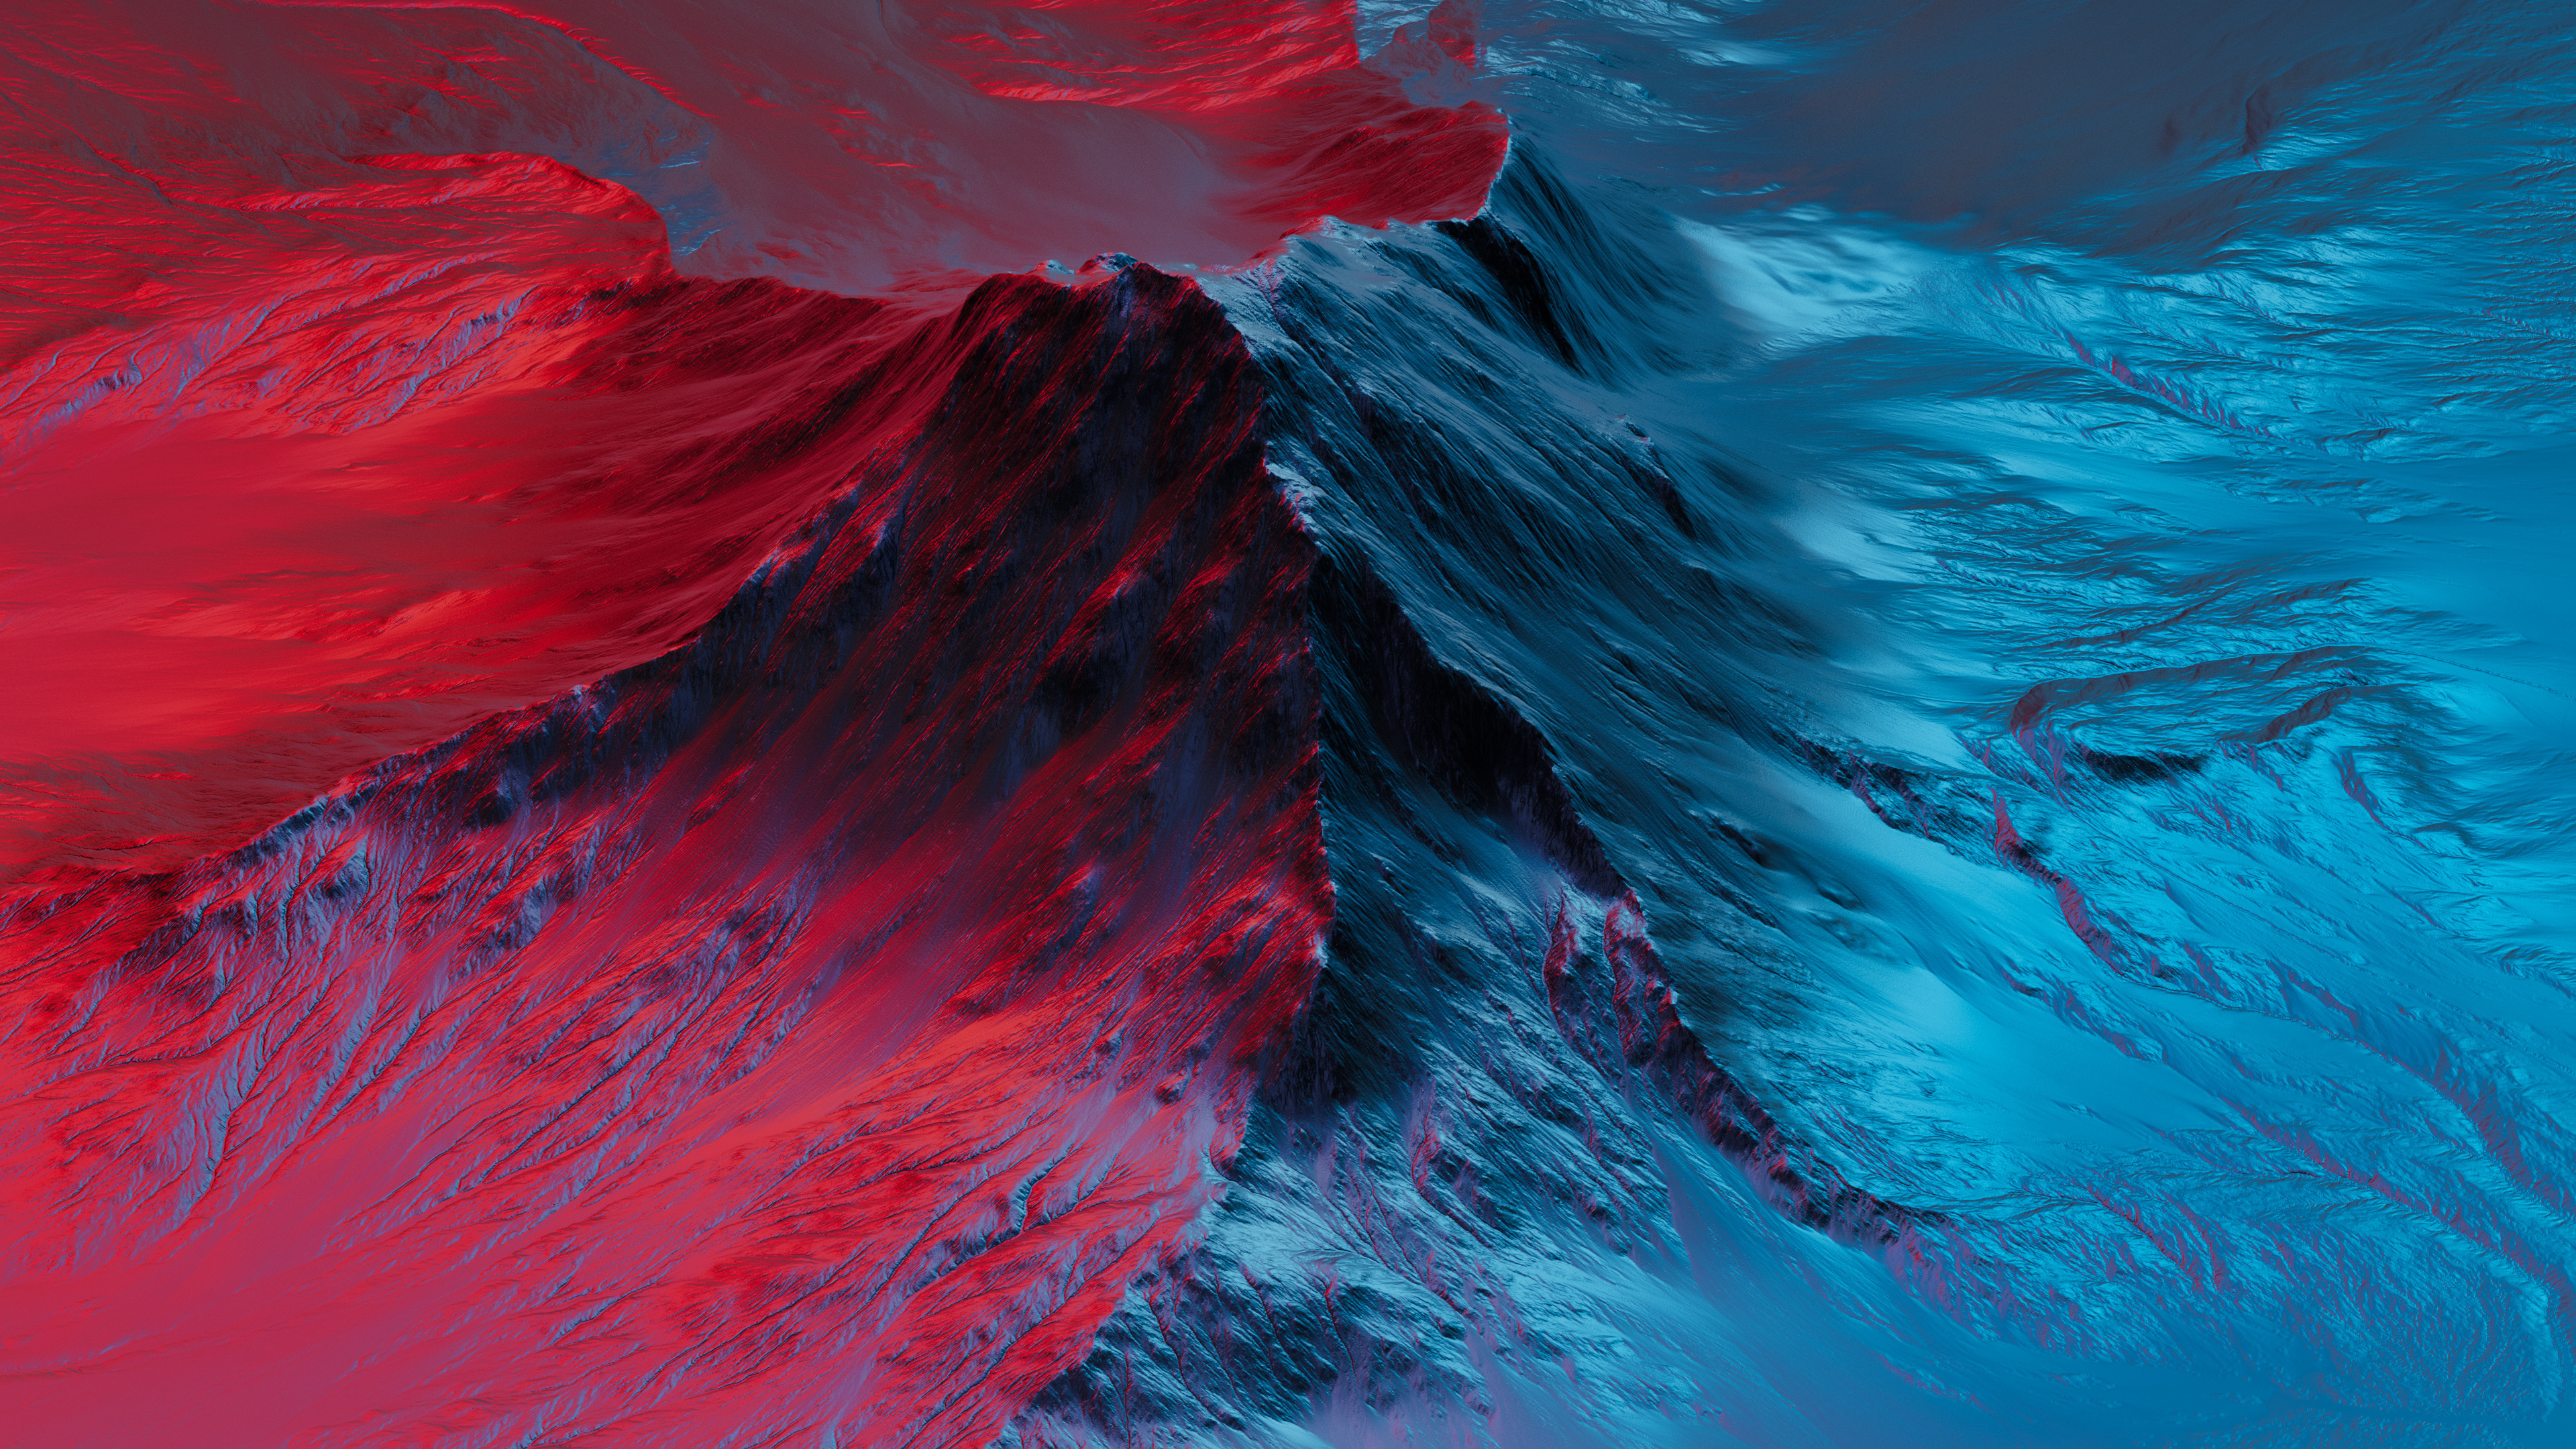 Download 3840x2160 wallpaper mountain, neon, red-blue ...